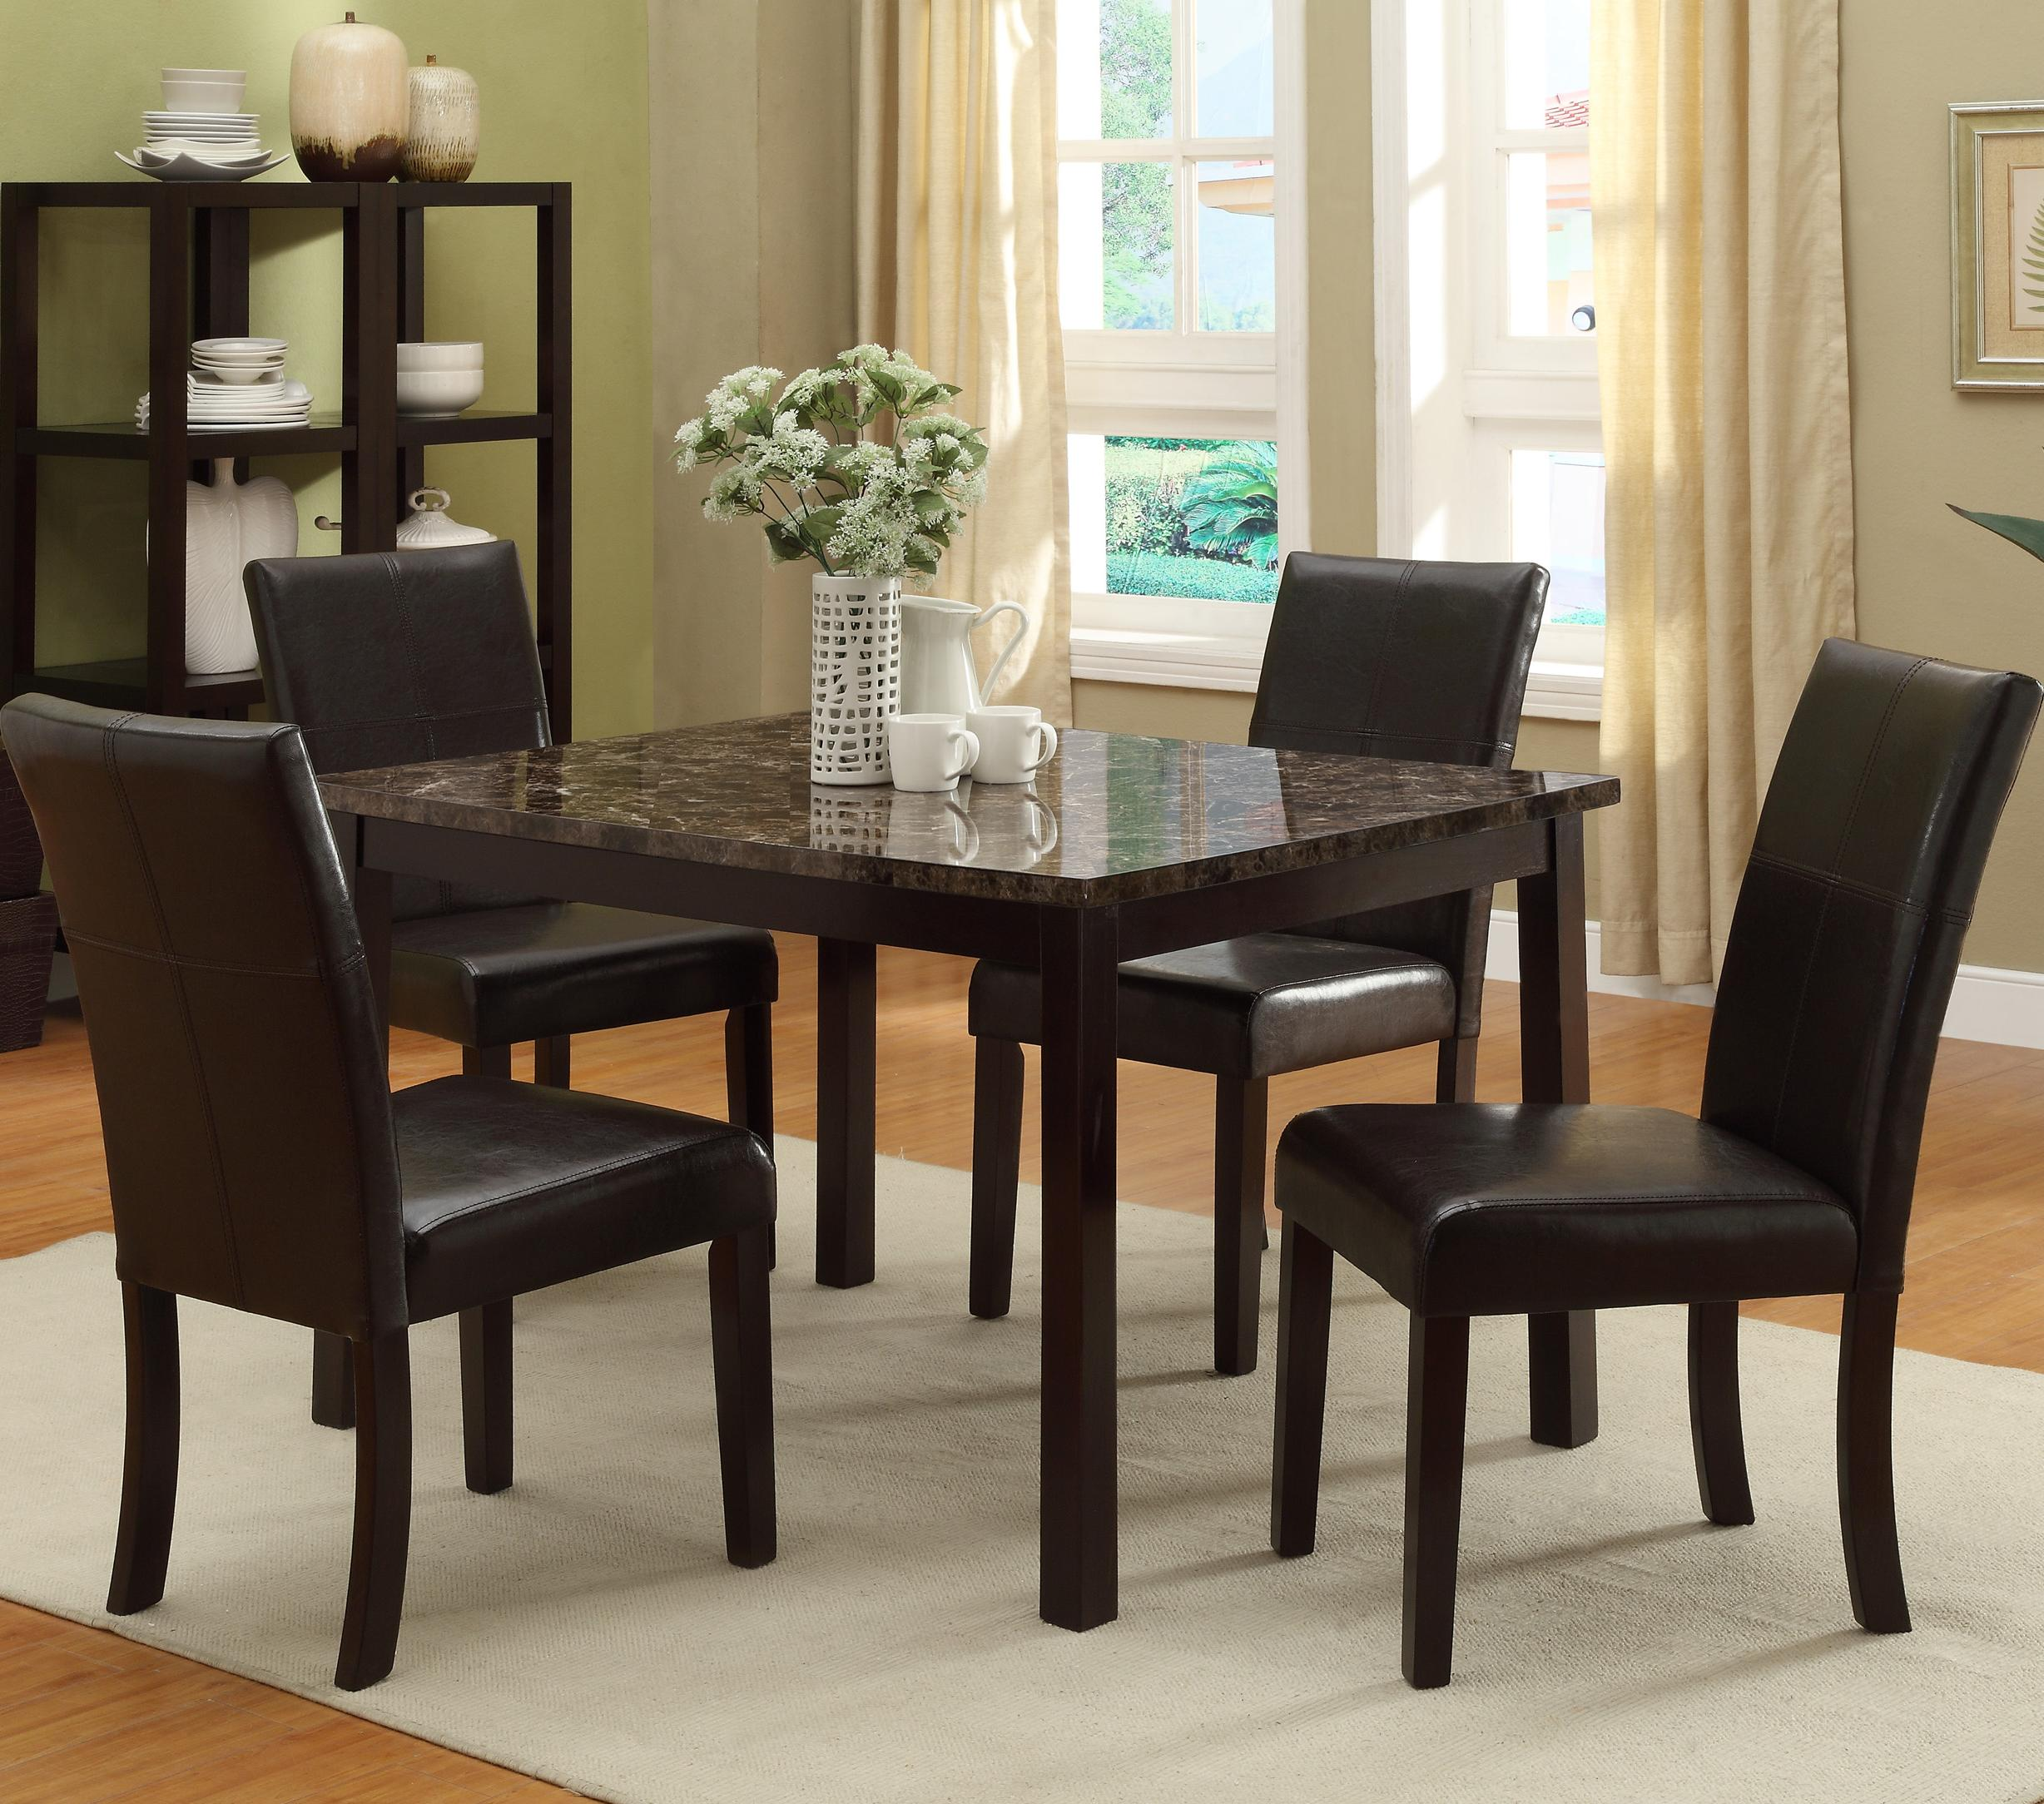 Crown Mark Pompei 5 Piece Table & Chair Set - Item Number: 2377T-3648+4x2377S